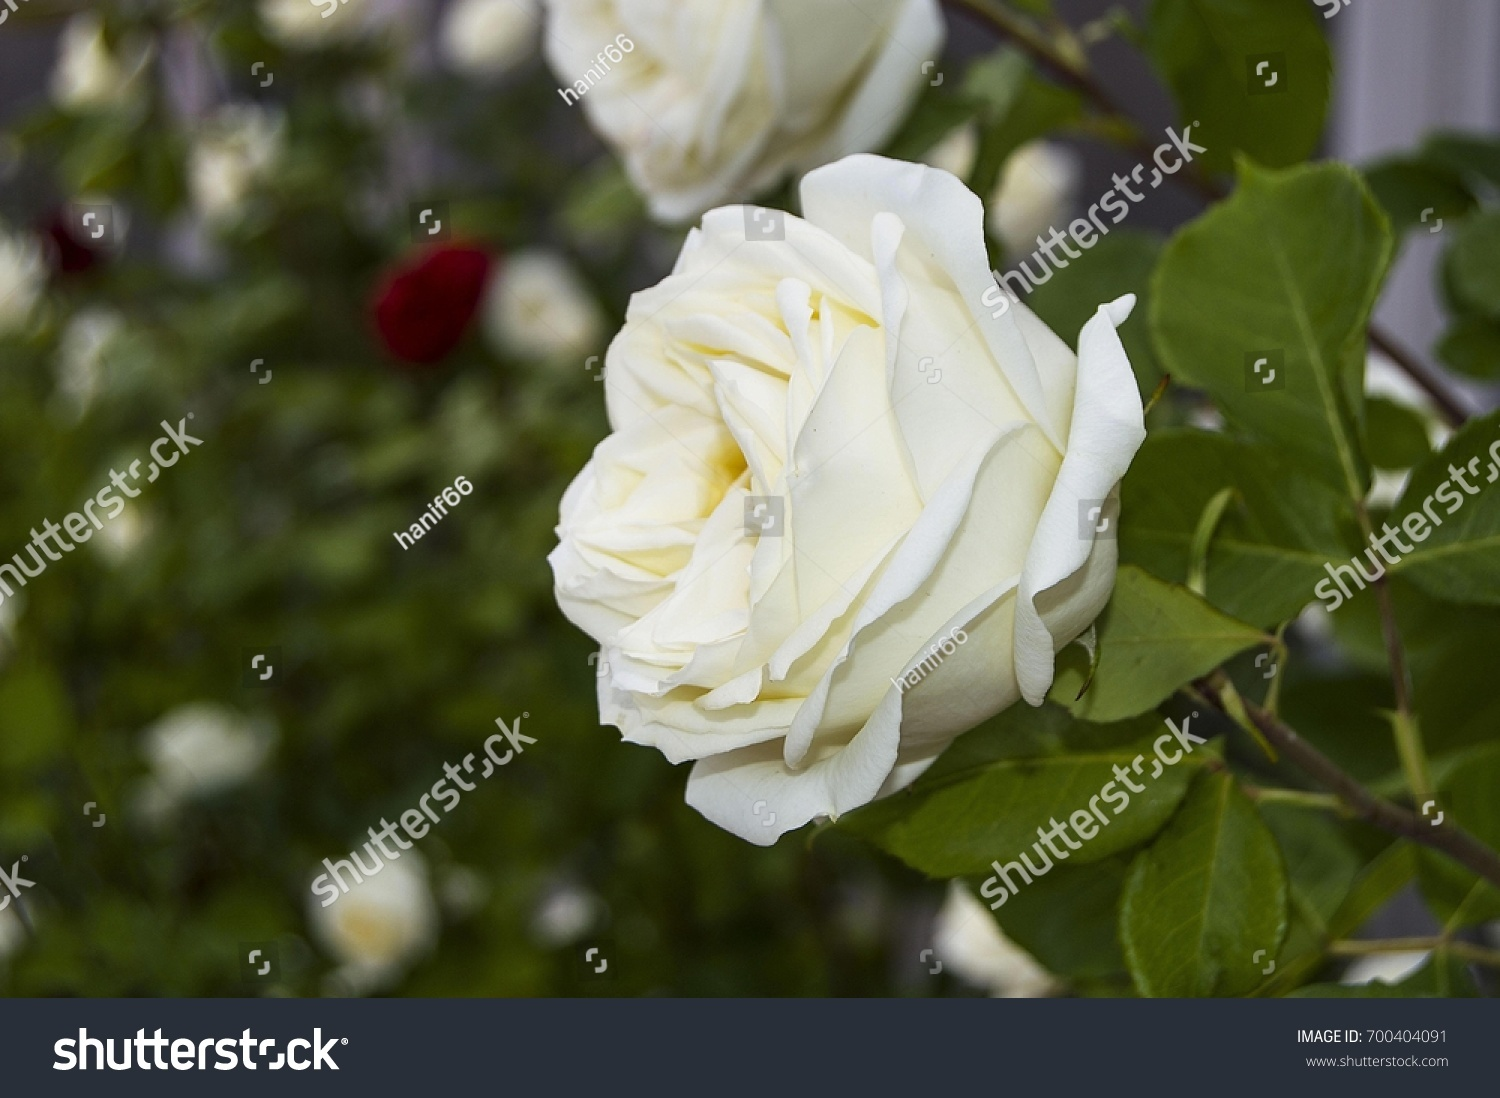 Roses love symbol roses white roses stock photo 700404091 shutterstock roses love symbol roses white roses for lovers day natural roses in the buycottarizona Choice Image